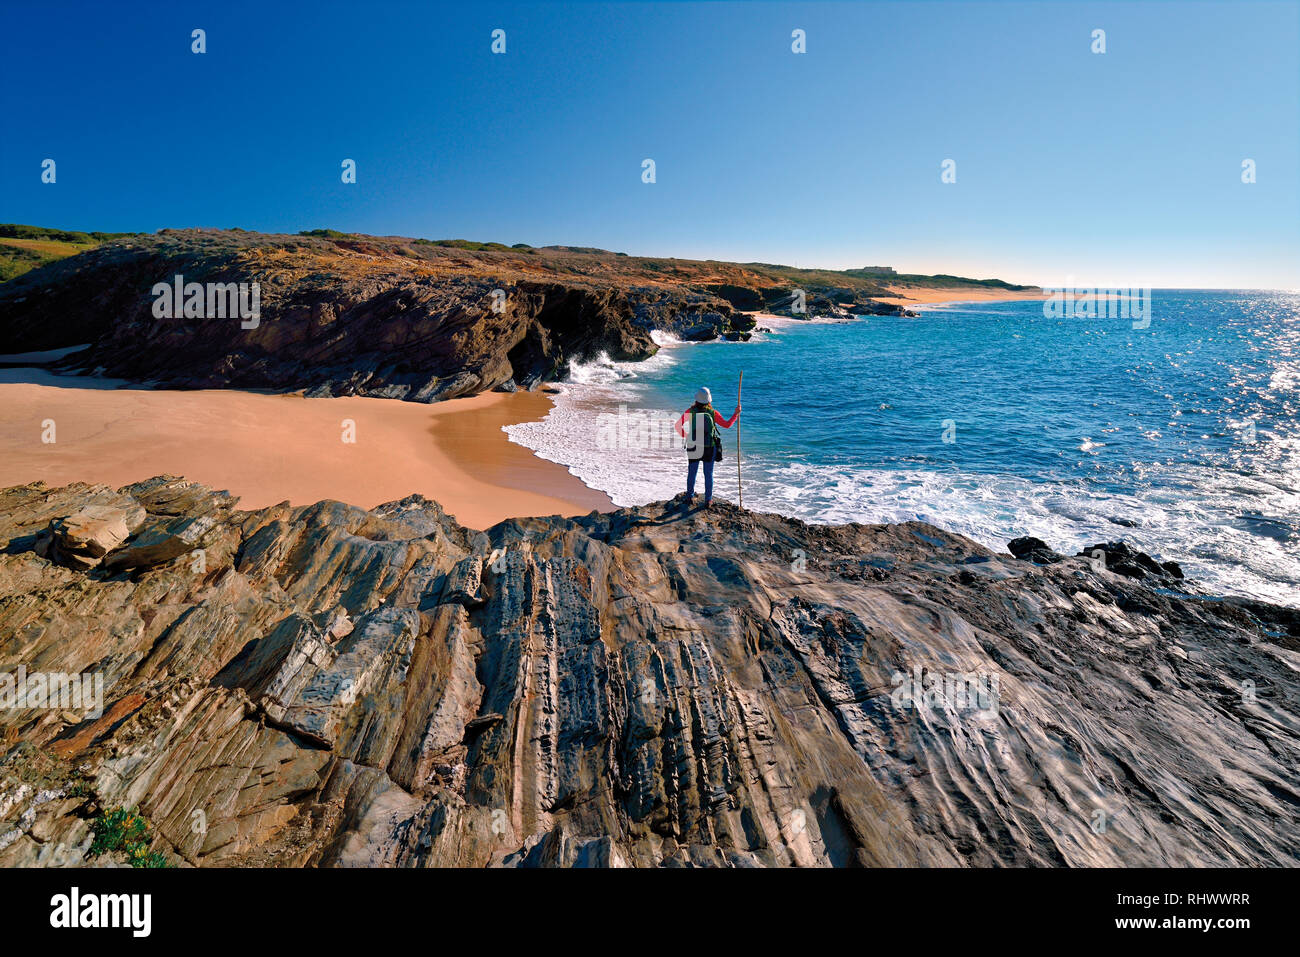 Female tourist with hiking outfit standing on a rocky cliff overlooking a wild sandy beach - Stock Image